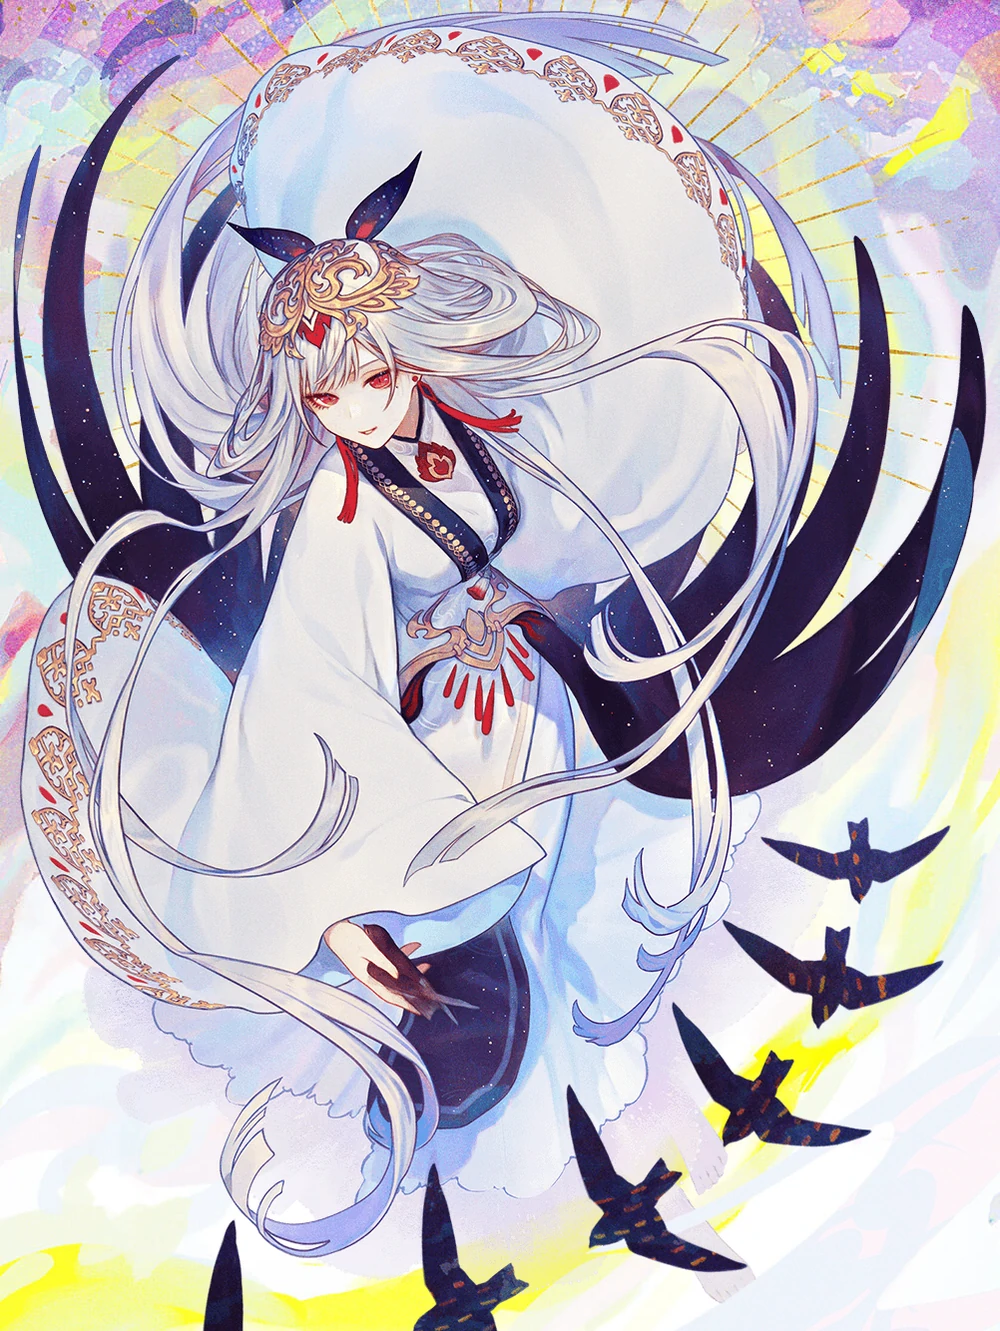 Pin by 珮筠 黃 on 食契 in 2020 Food fantasy, Anime, Fantasy